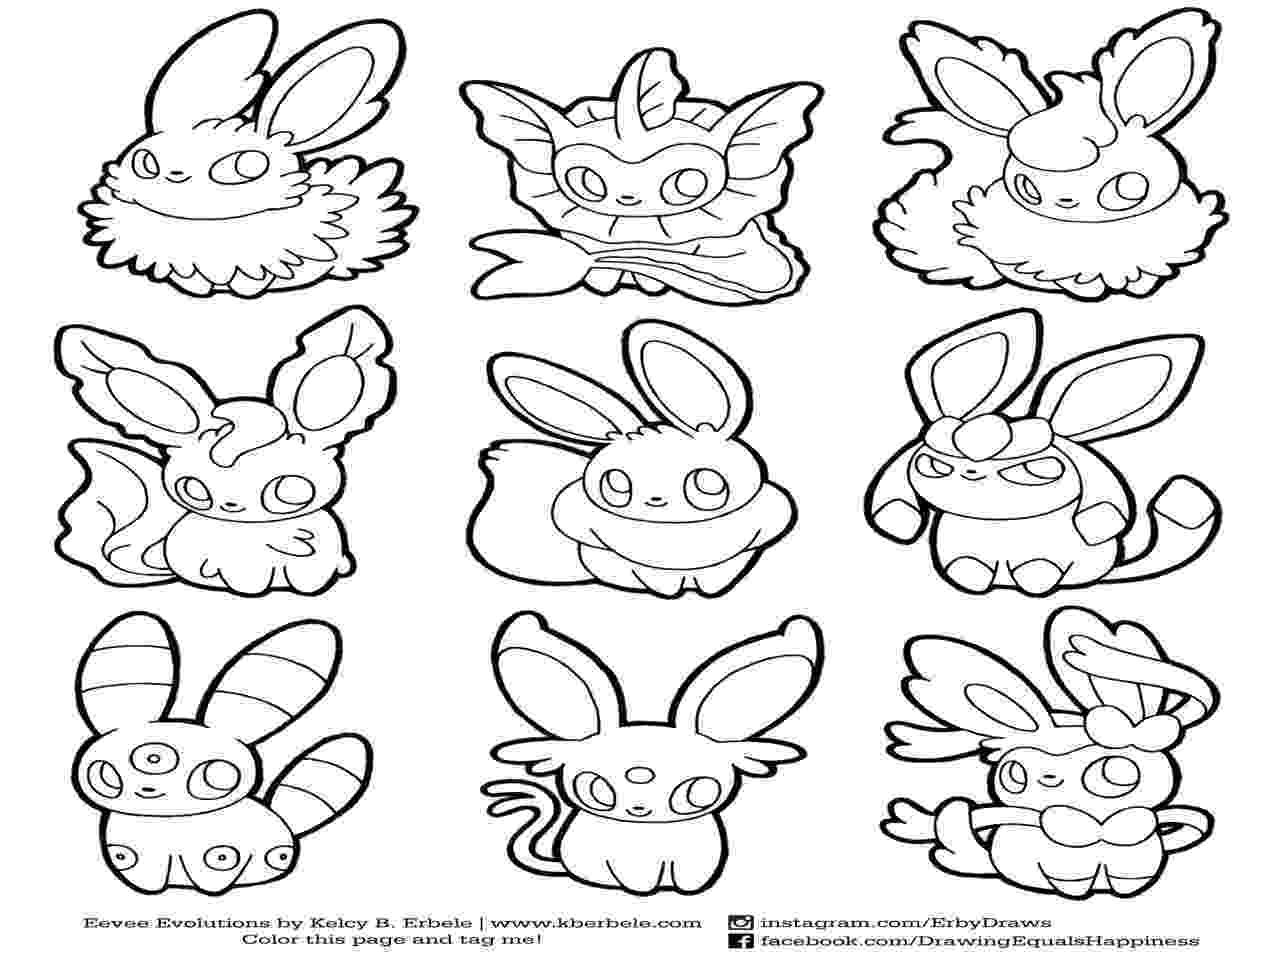 pokemon coloring pages eevee evolutions glaceon eeveelutions coloring pages at getdrawings free download pokemon glaceon pages eevee coloring evolutions